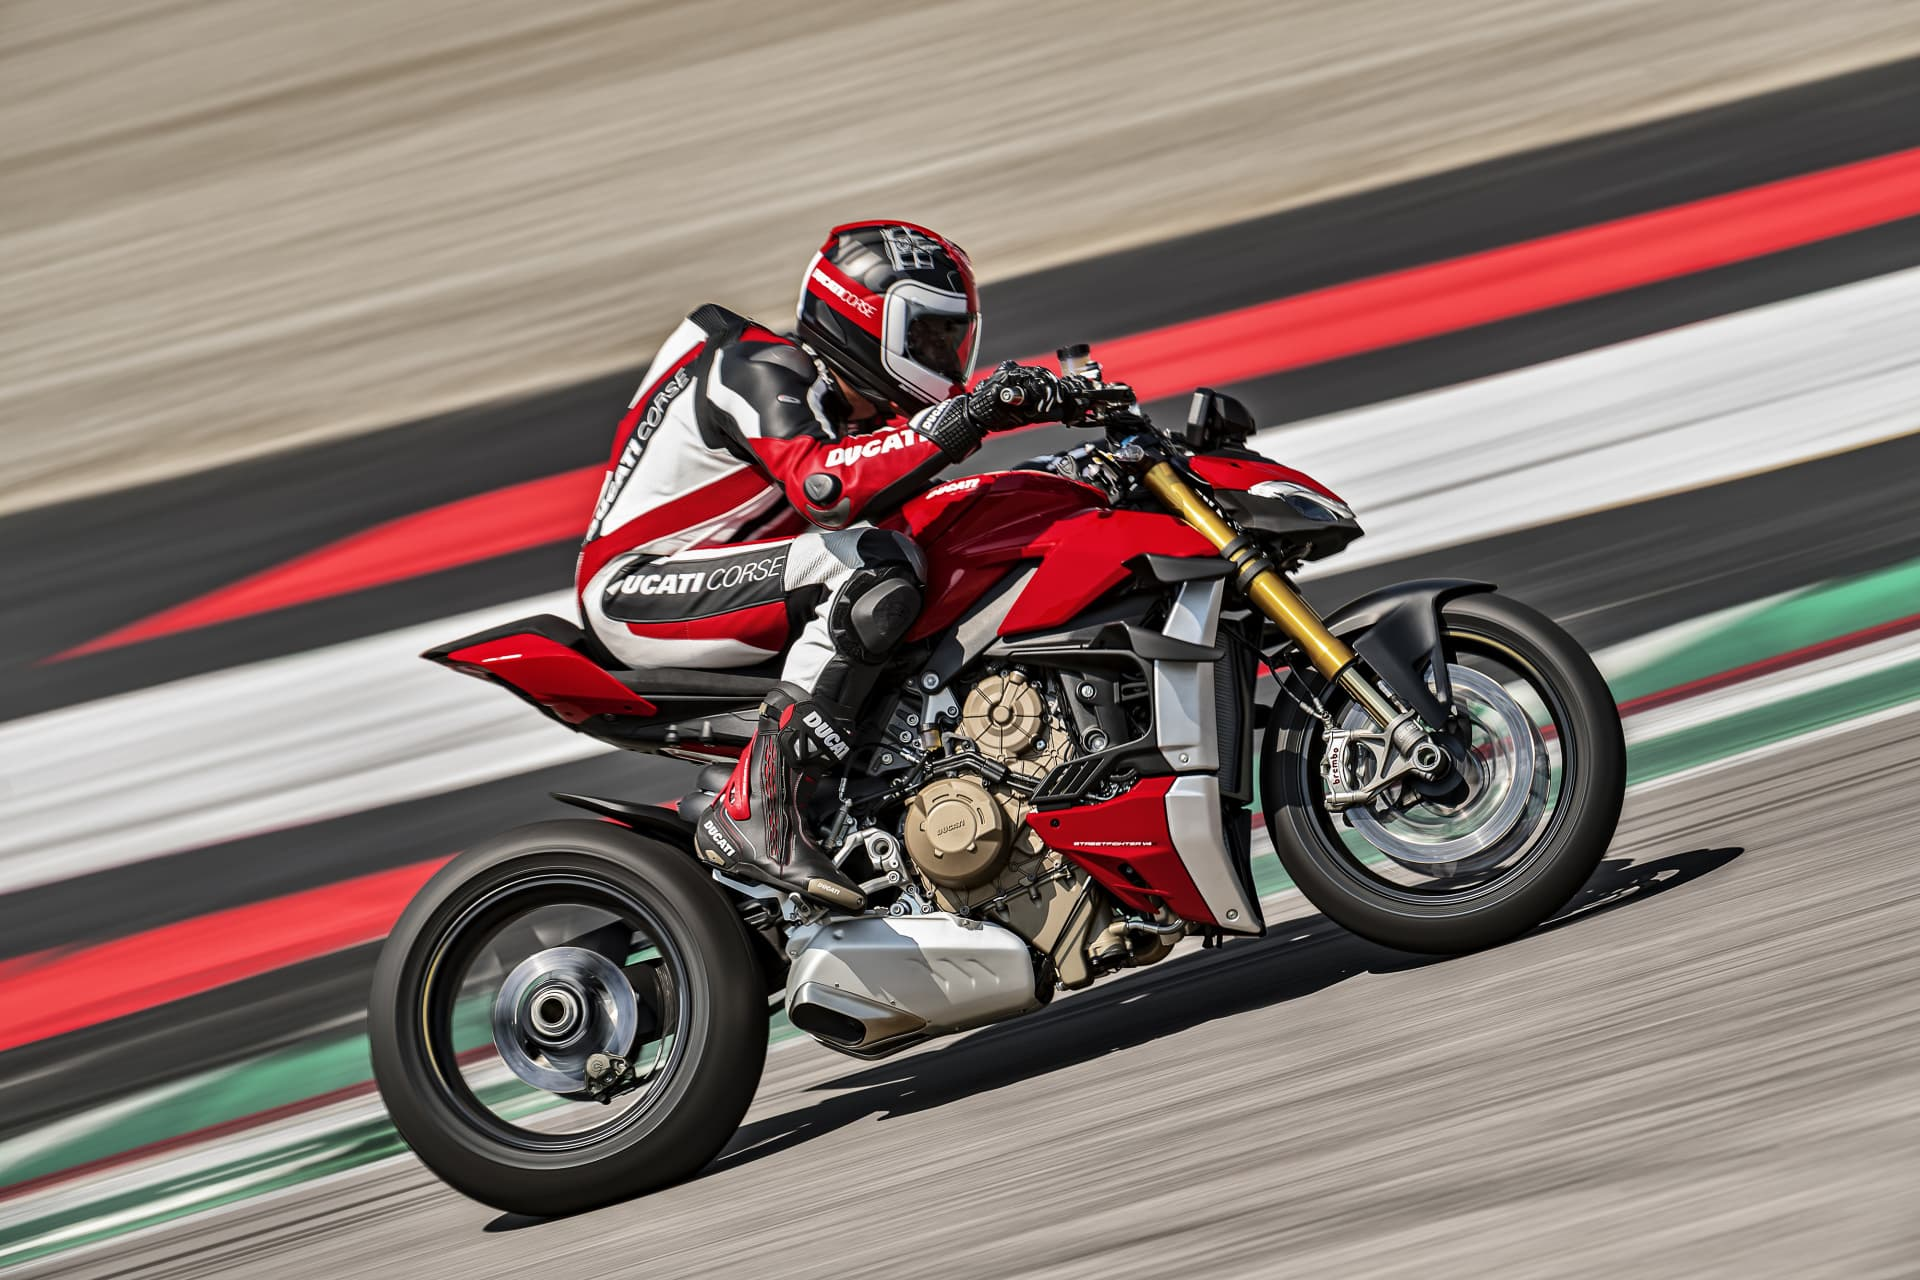 My20 Ducati Streetfighter V4 S Ambience 20 Uc101641 Mid